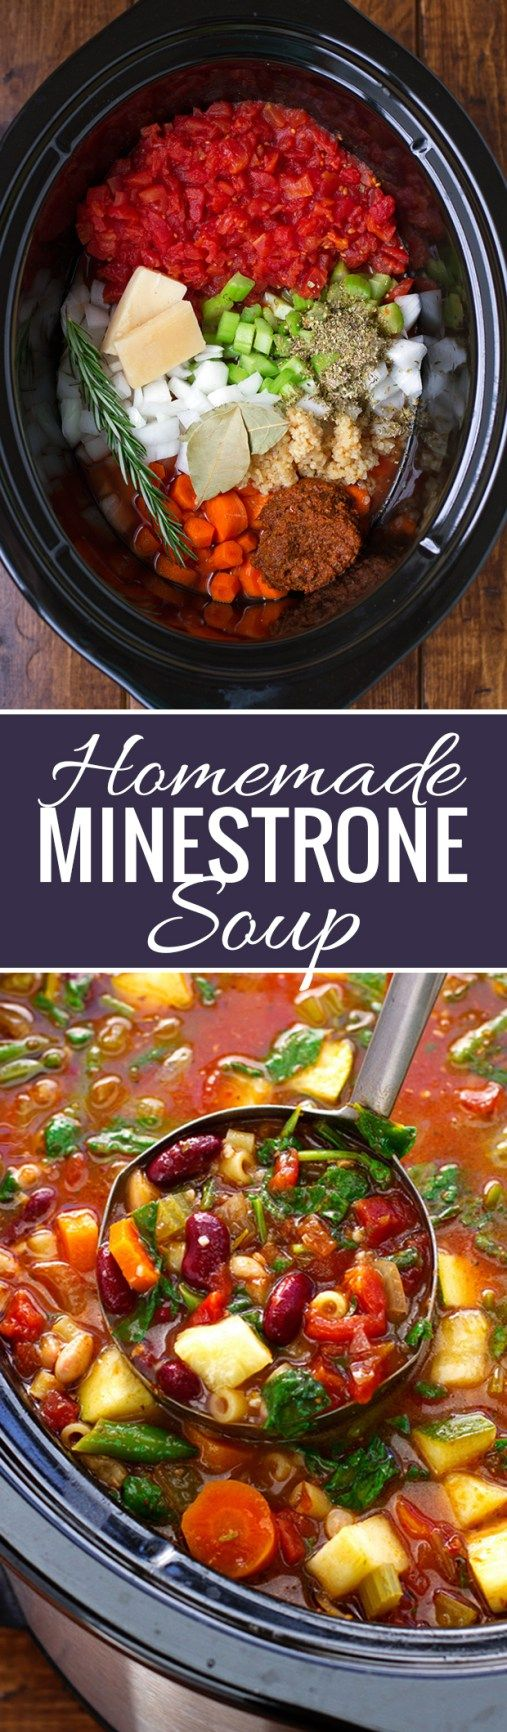 Homemade Minestrone Soup {Slow Cooker} made with a secret ingredient, this soup is perfect for chilly evenings! #minestronesoup #crockpot #slowcooker #minestrone | LIttlespicejar.com